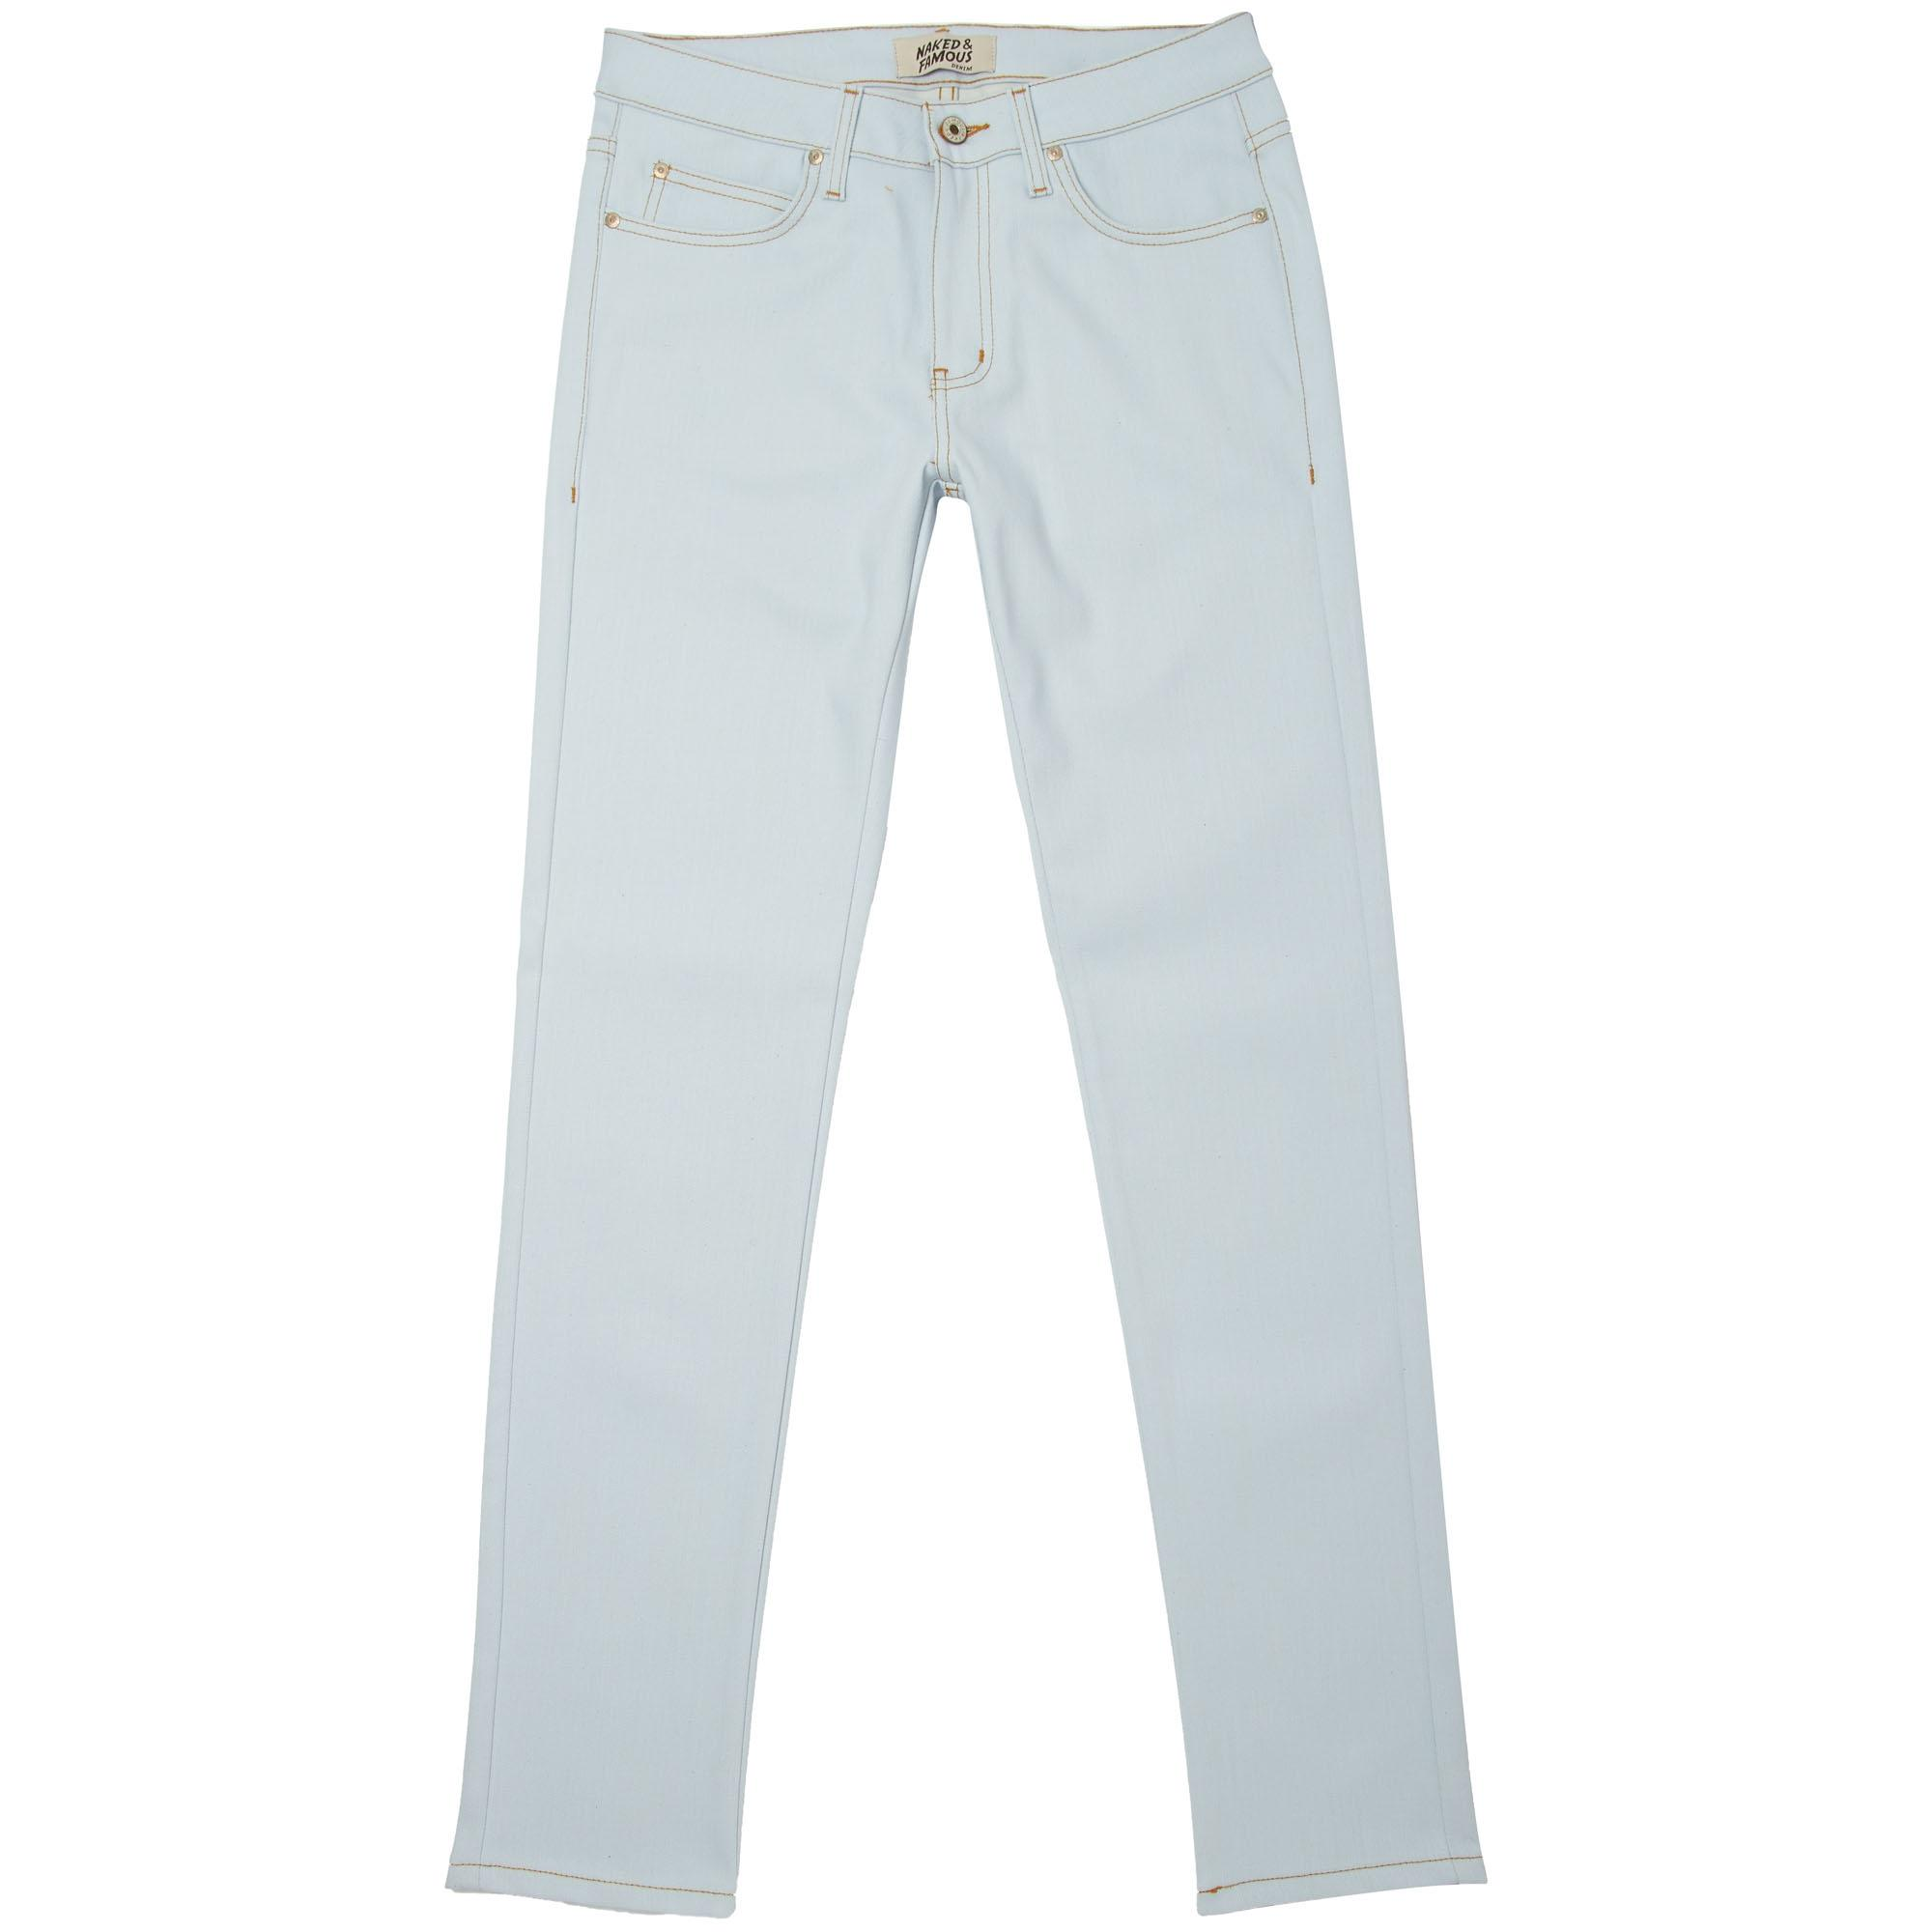 a4414c728 ... Powder Blue Power Stretch Super Skinny Guy Jeans for men. View  fullscreen